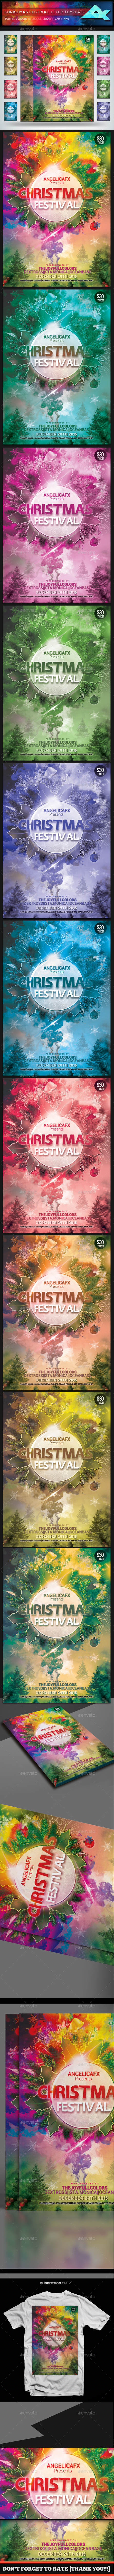 Christmas Festival Flyer Template - Flyers Print Templates